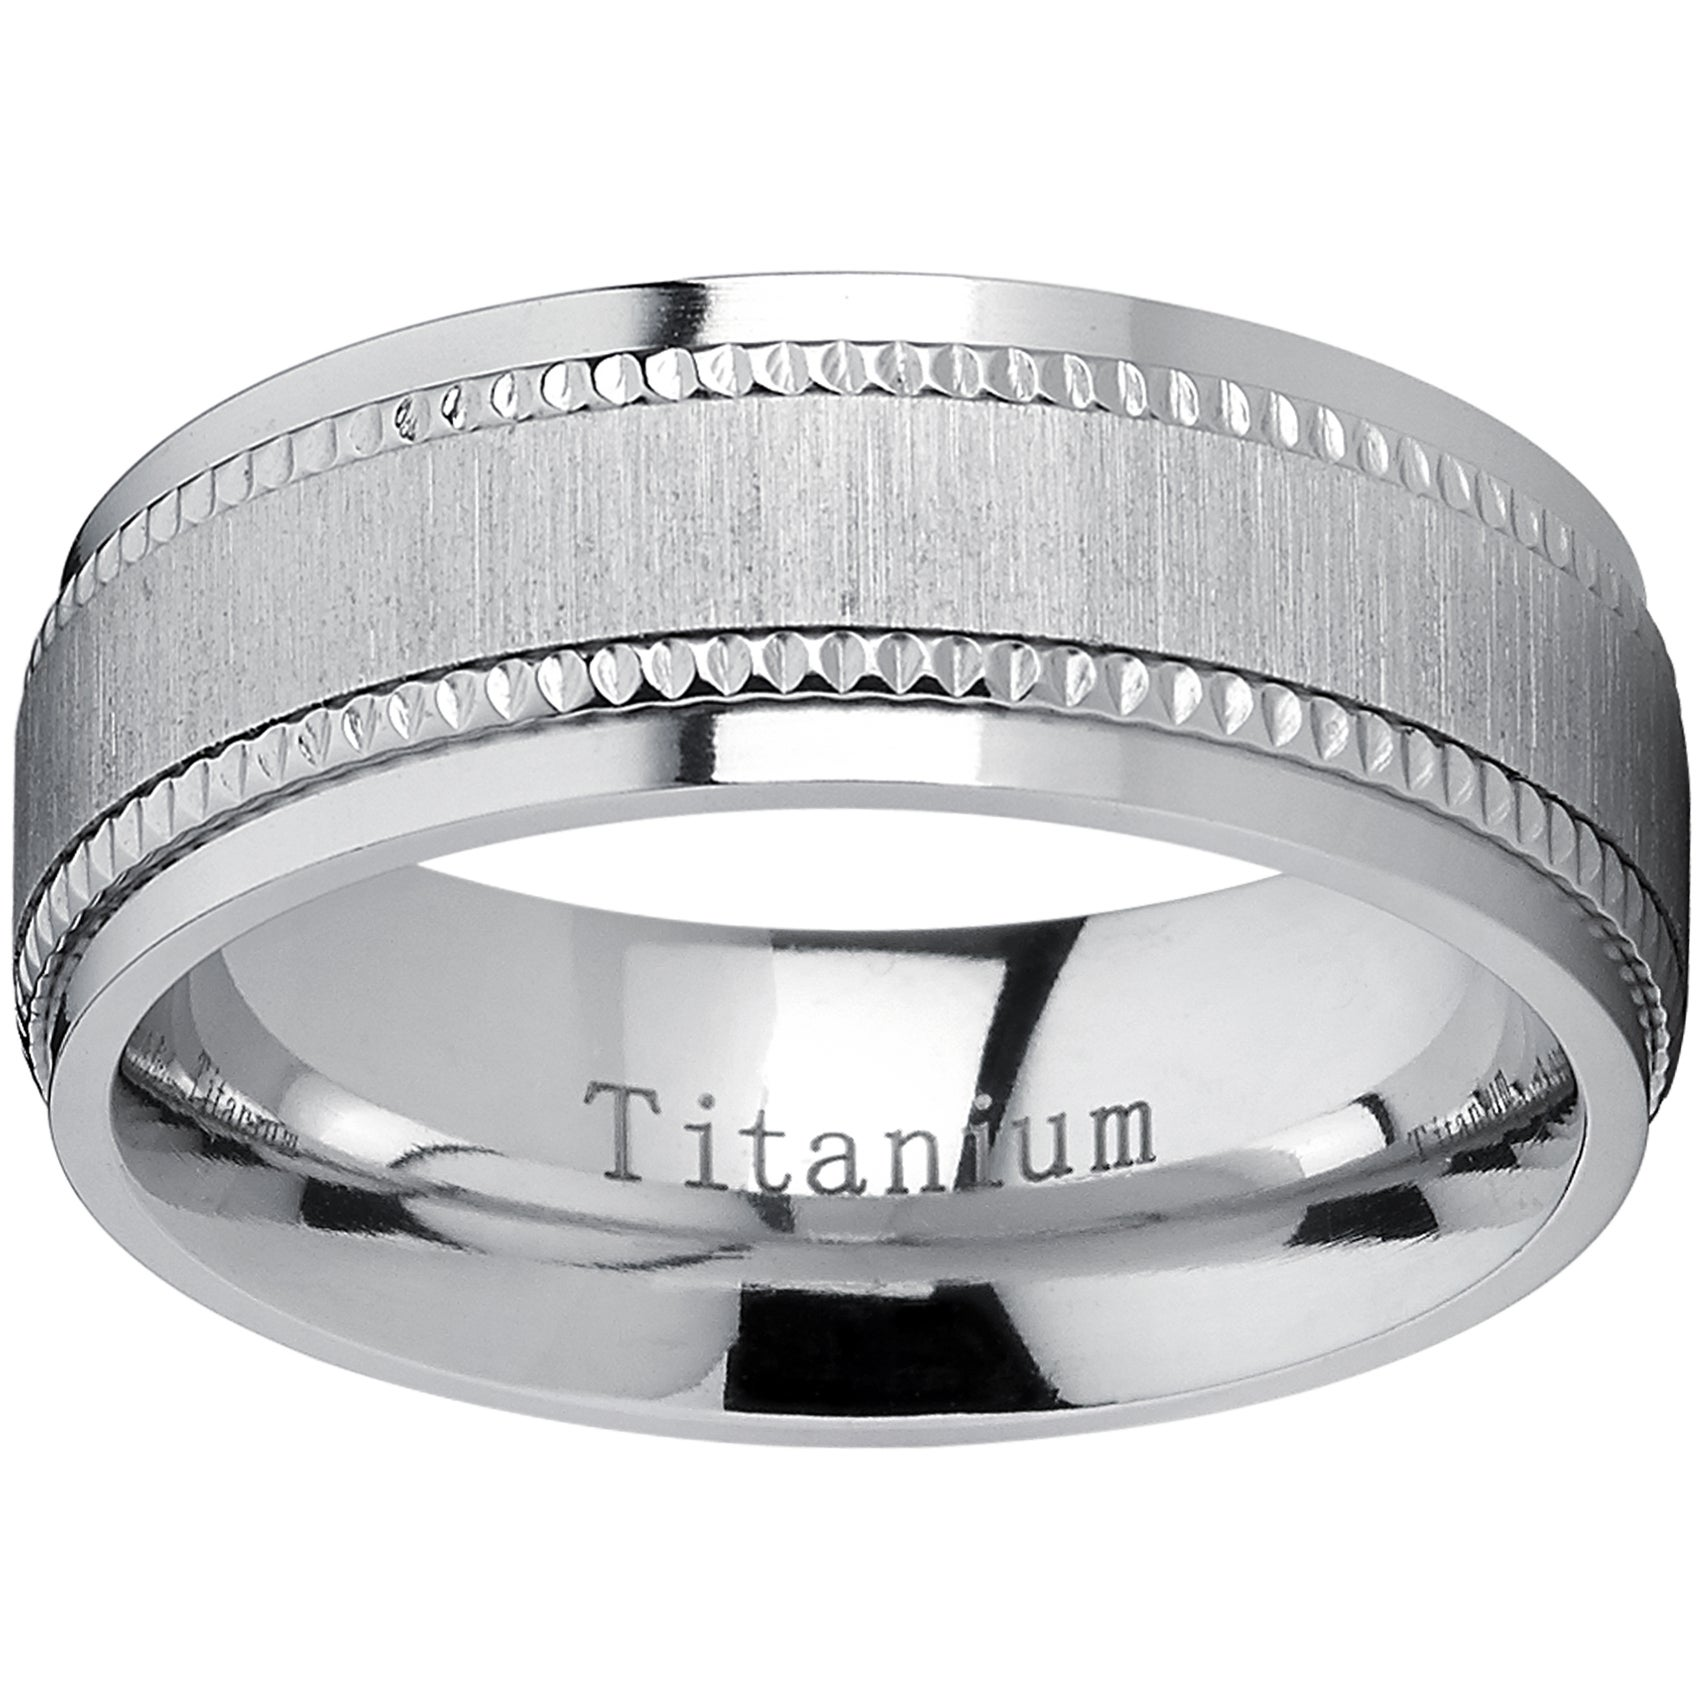 beyond milgrain bands wedding men classic rings s